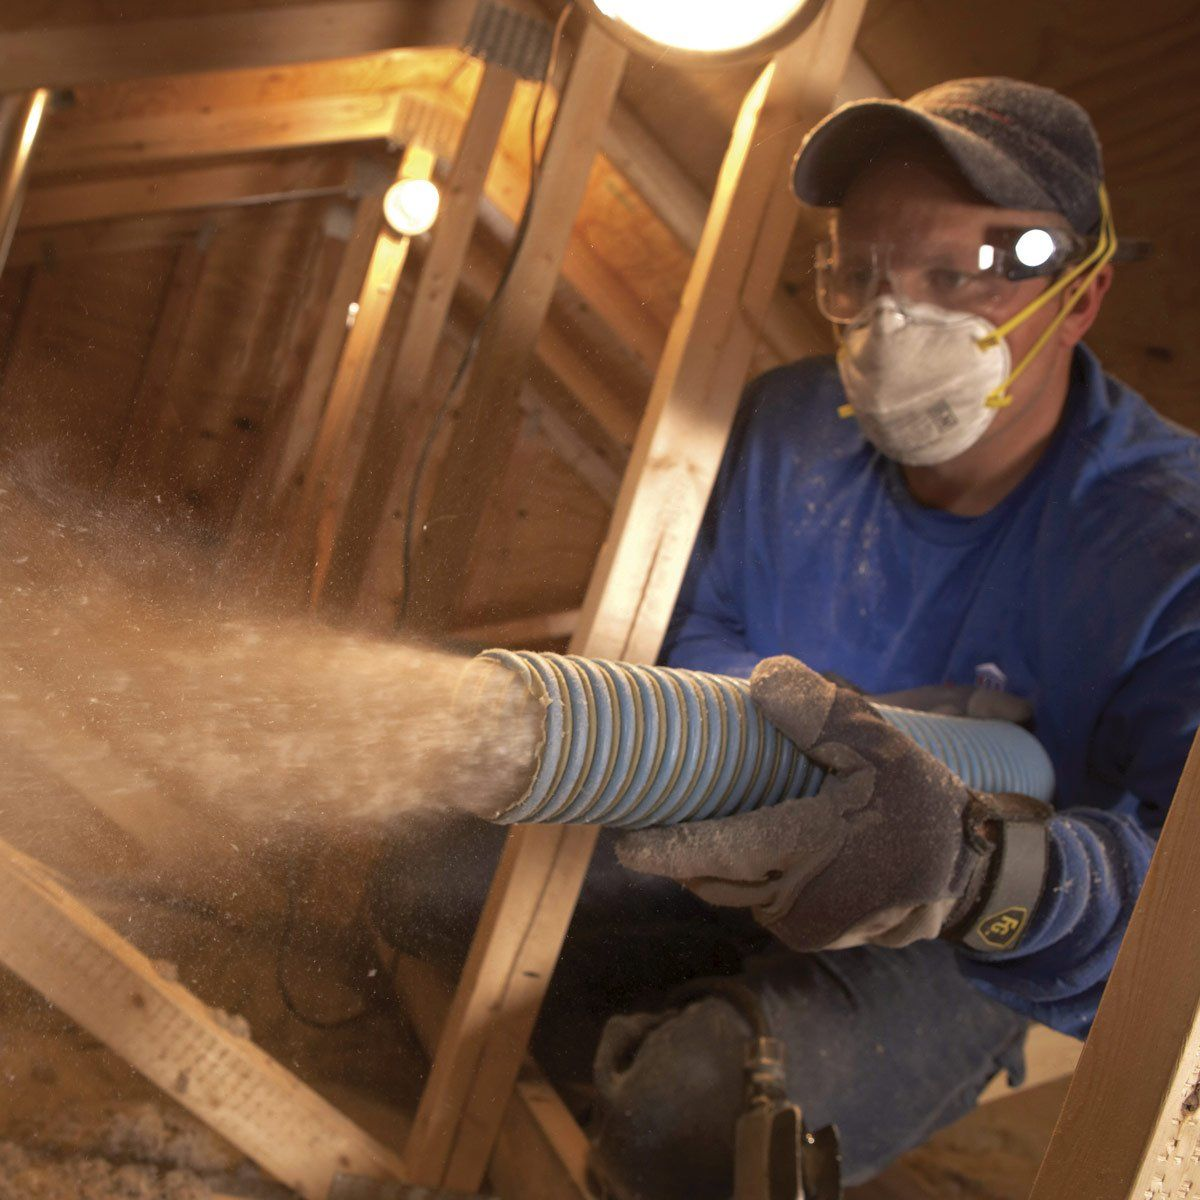 Saving Energy Blown In Insulation In The Attic In 2020 Blown In Insulation Attic Insulation Batt Insulation